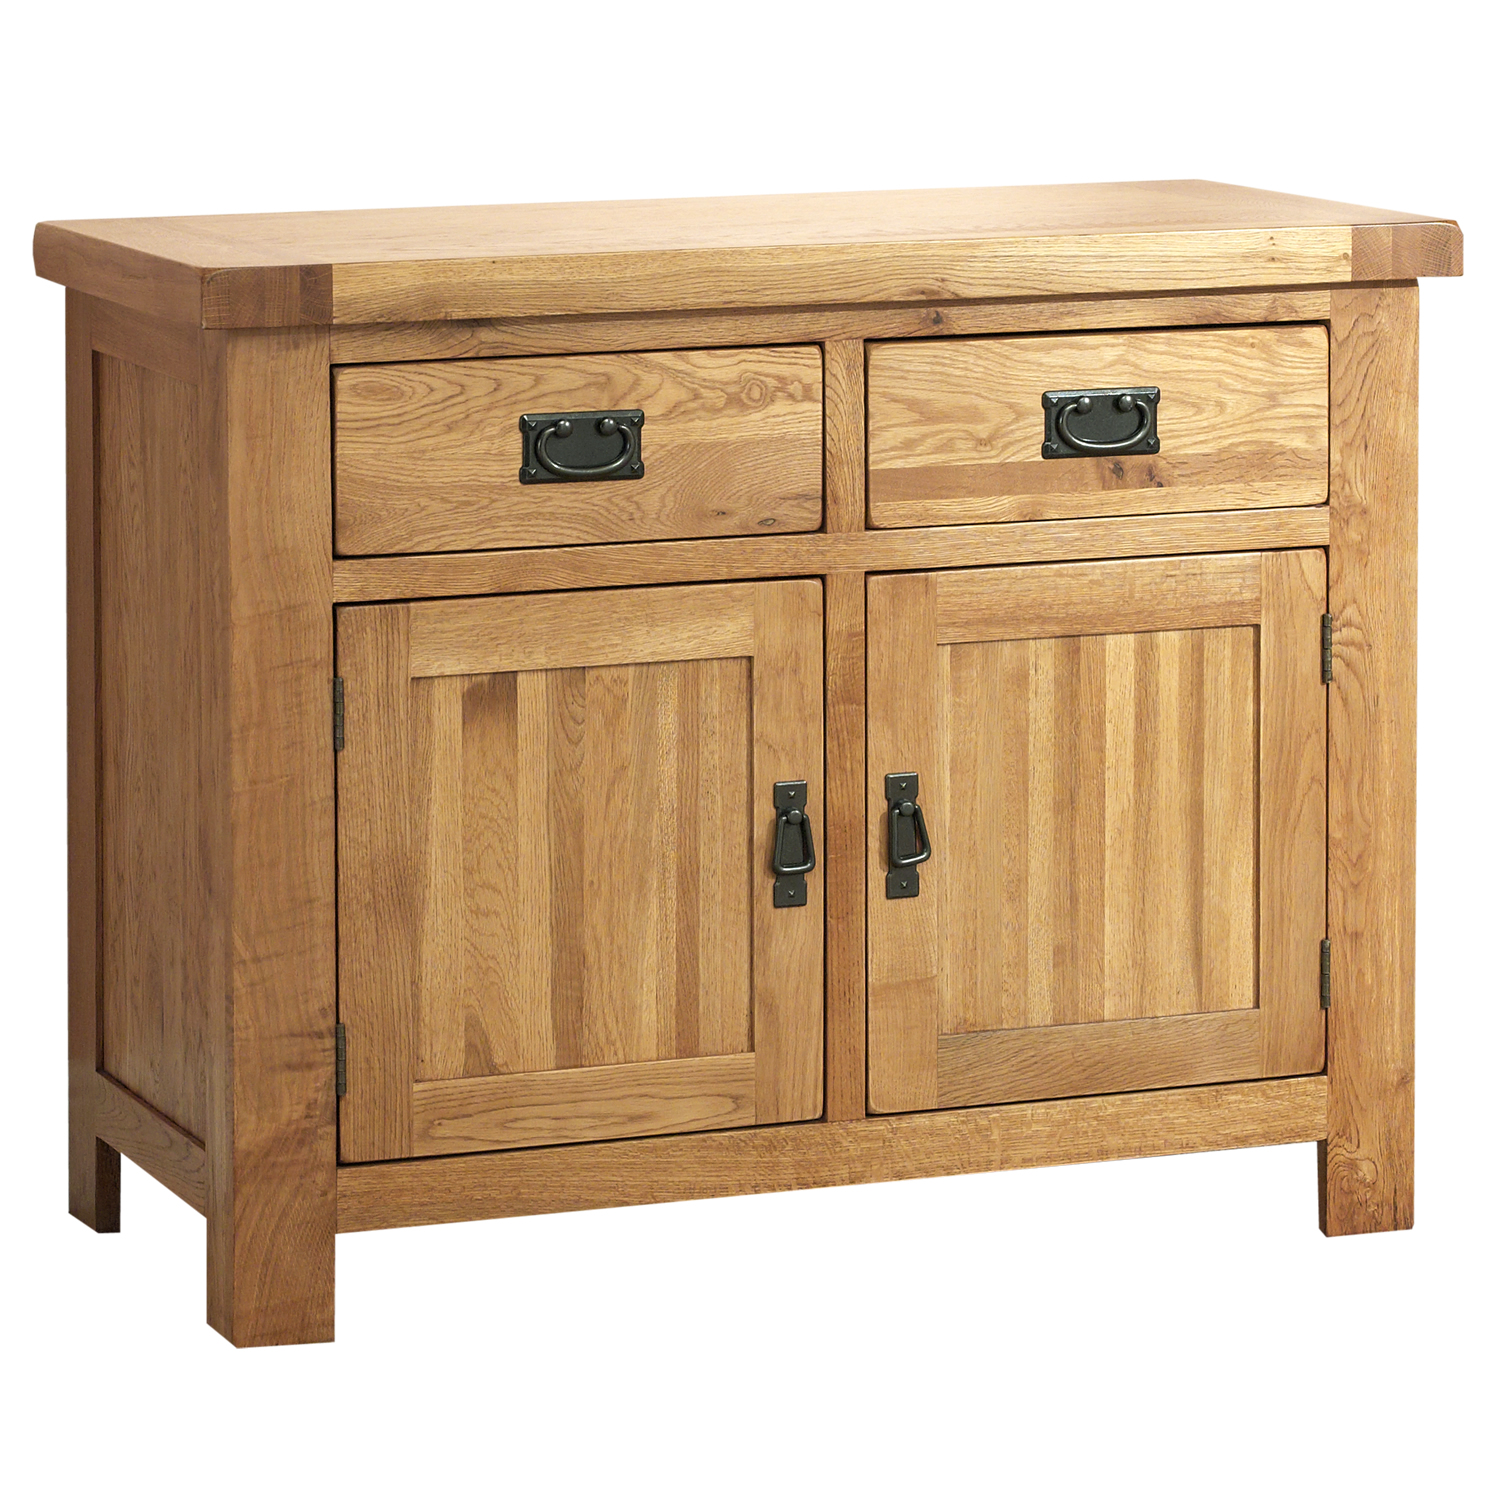 Solid oak sideboard is your first choice living room for Living room designs with oak furniture